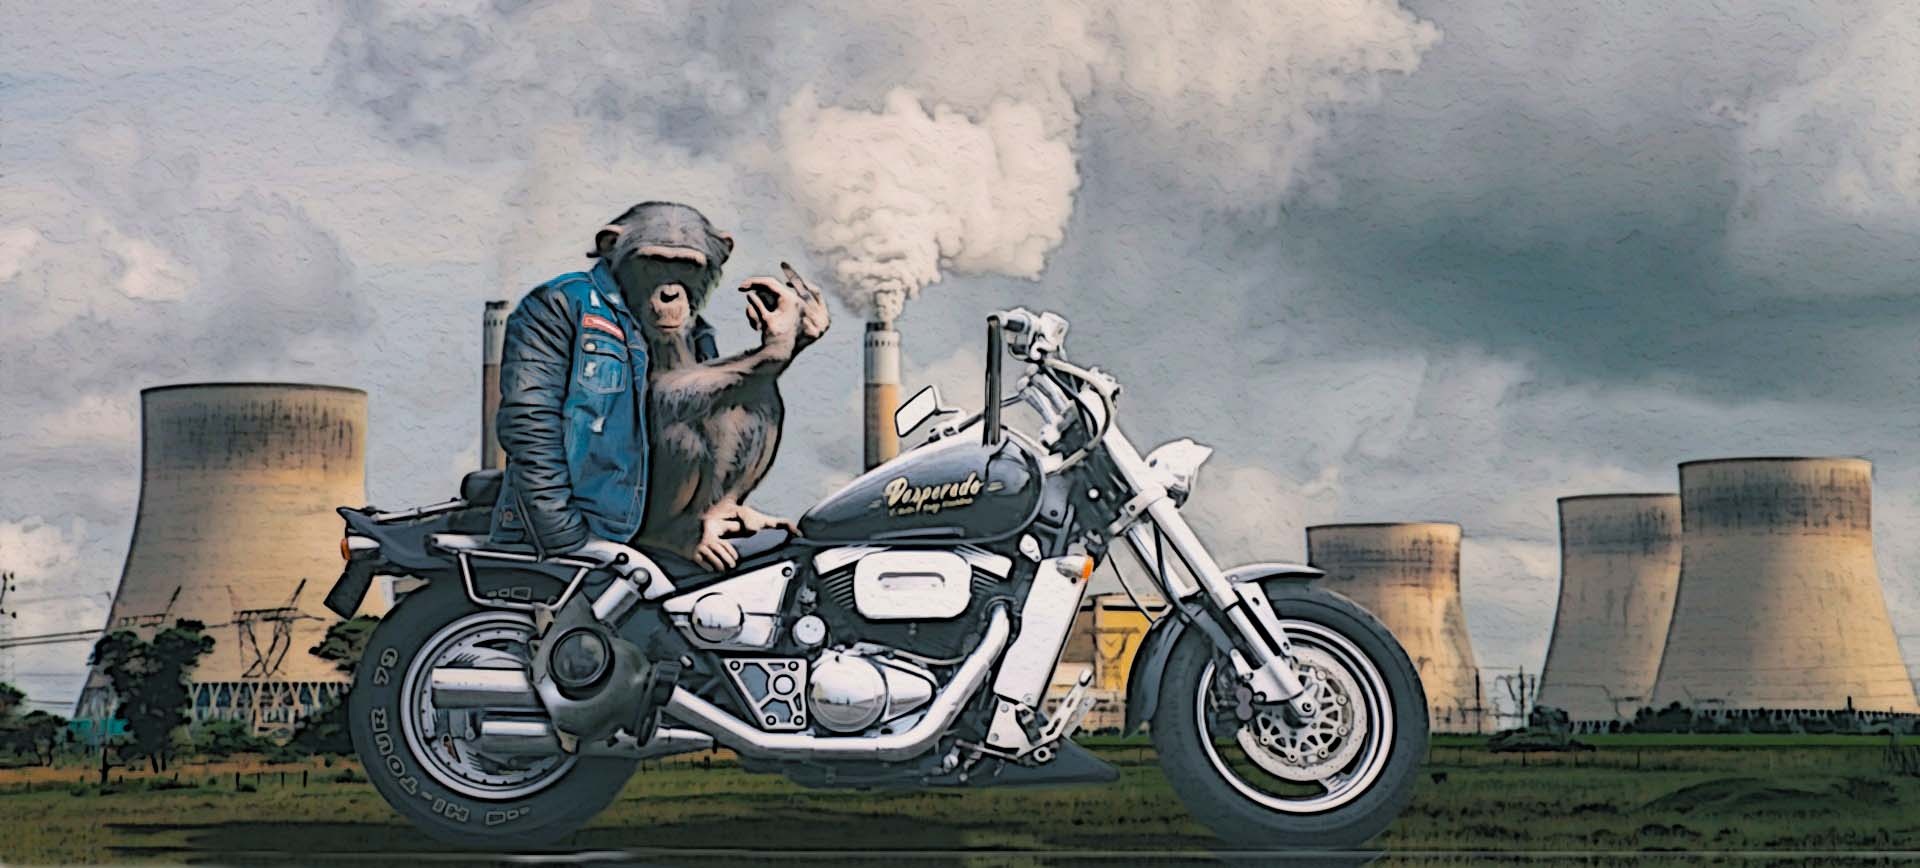 monkey on motorcycle in front of nuclear plant